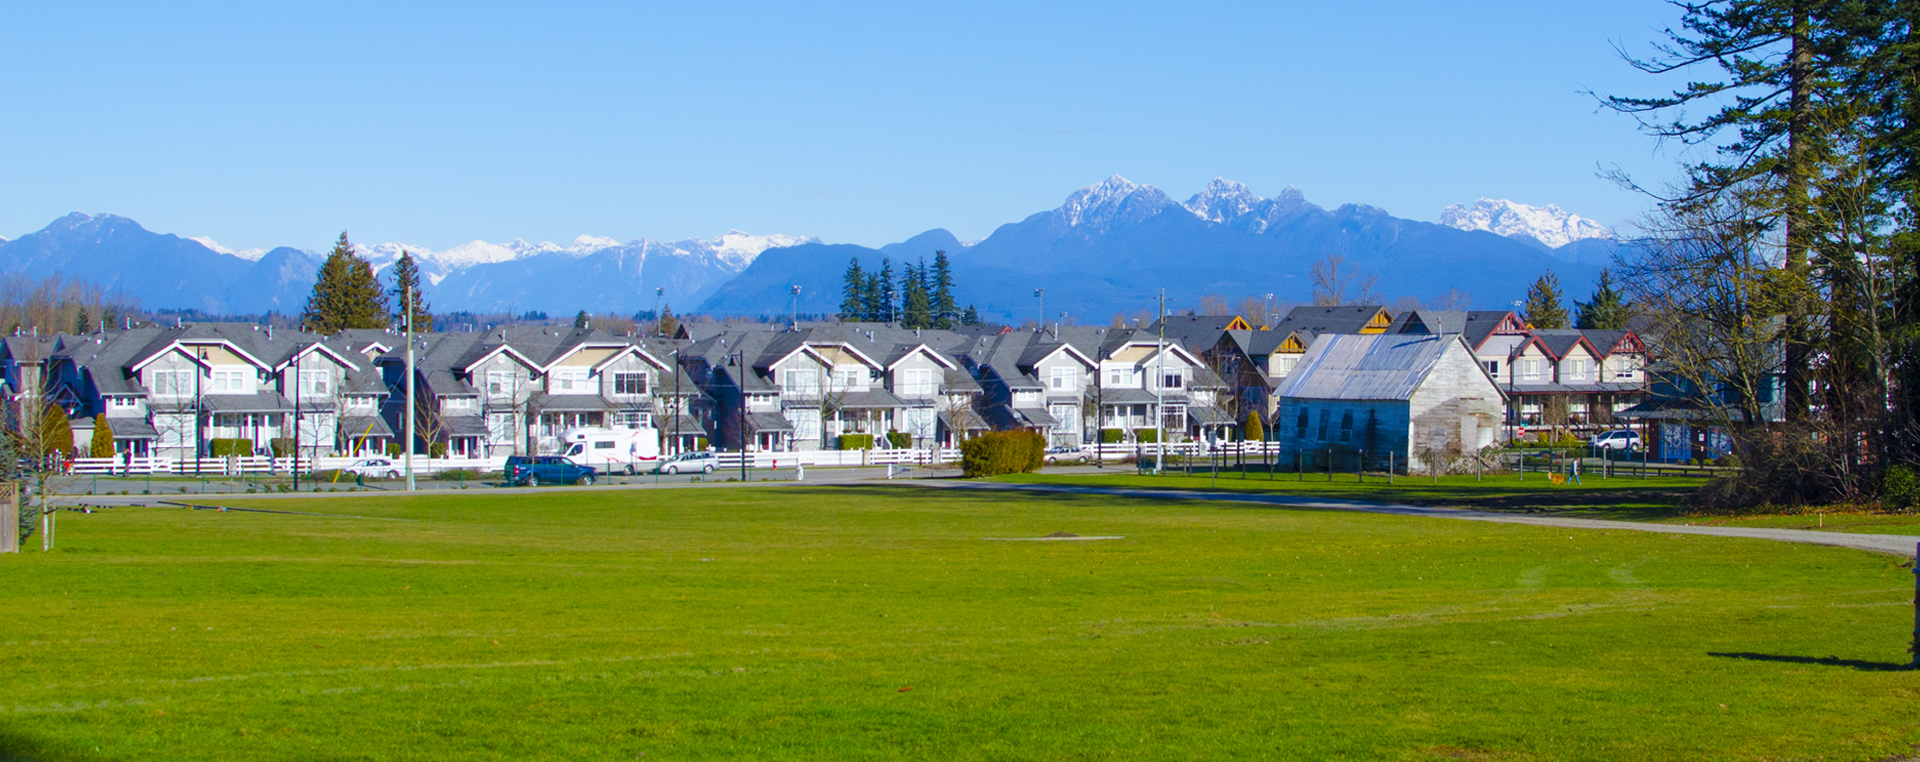 Photo S Amp Video Buy Cloverdale Real Estate Get The Facts